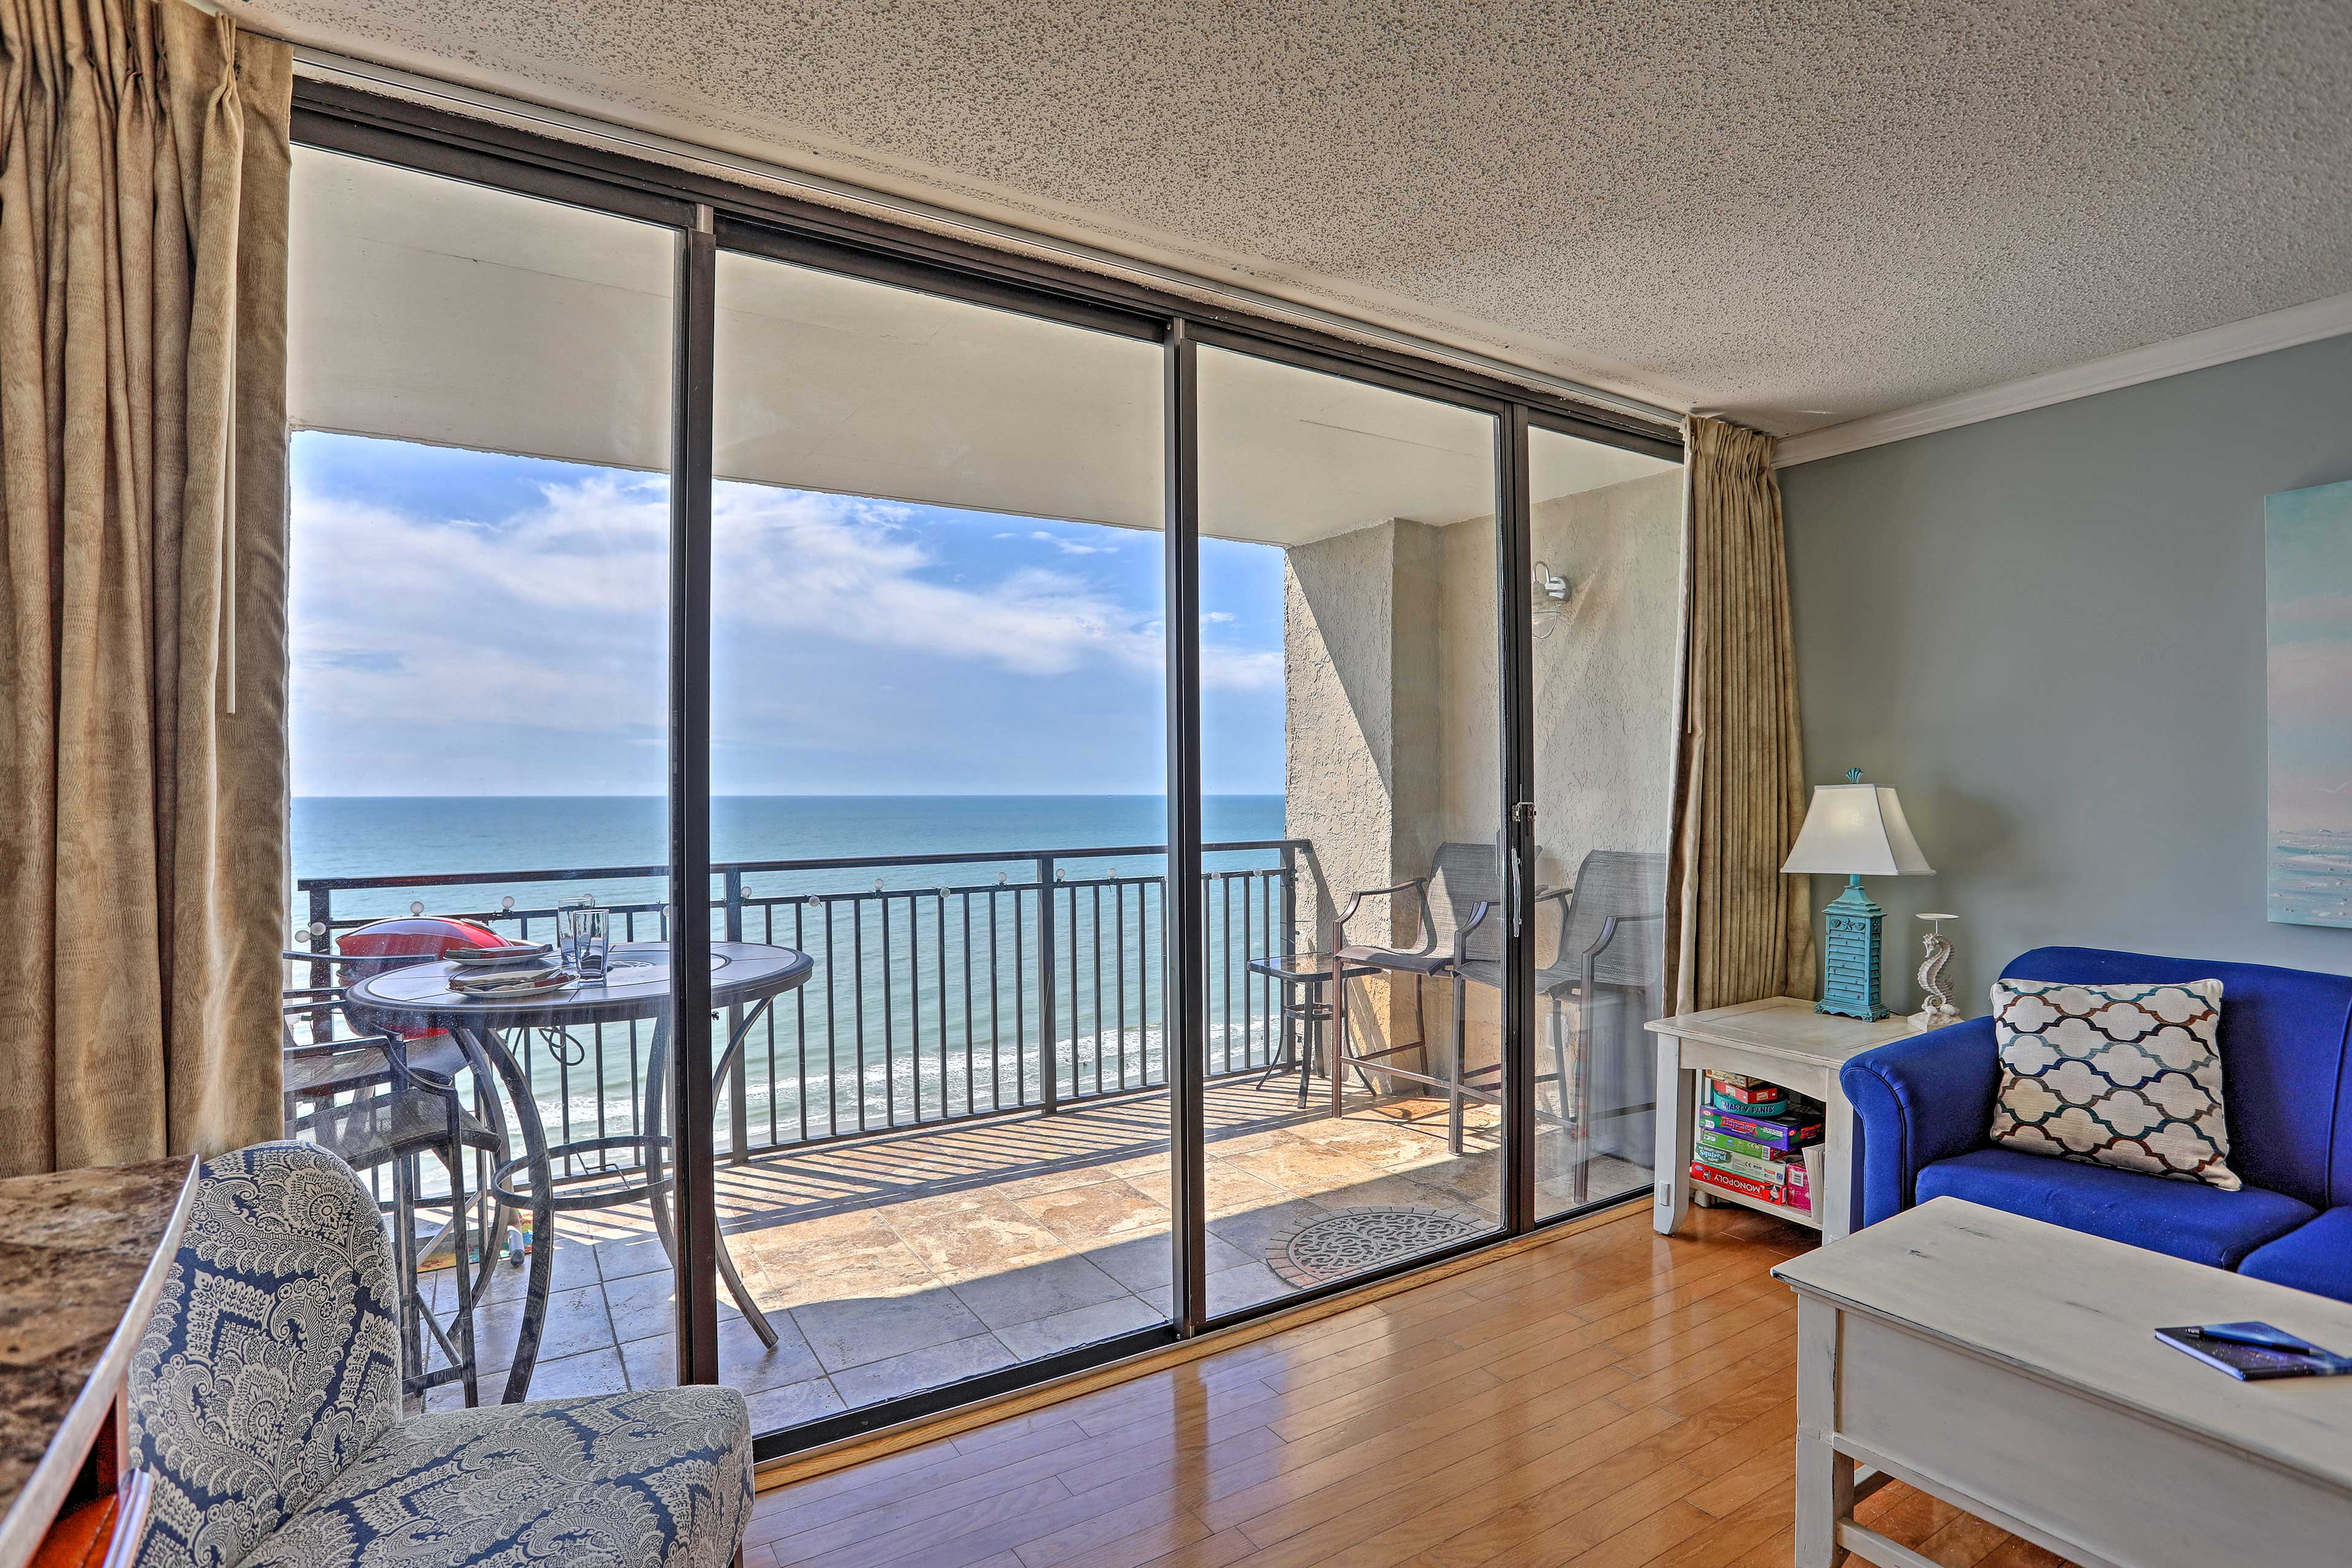 Enjoy ocean views from the living area and balcony.